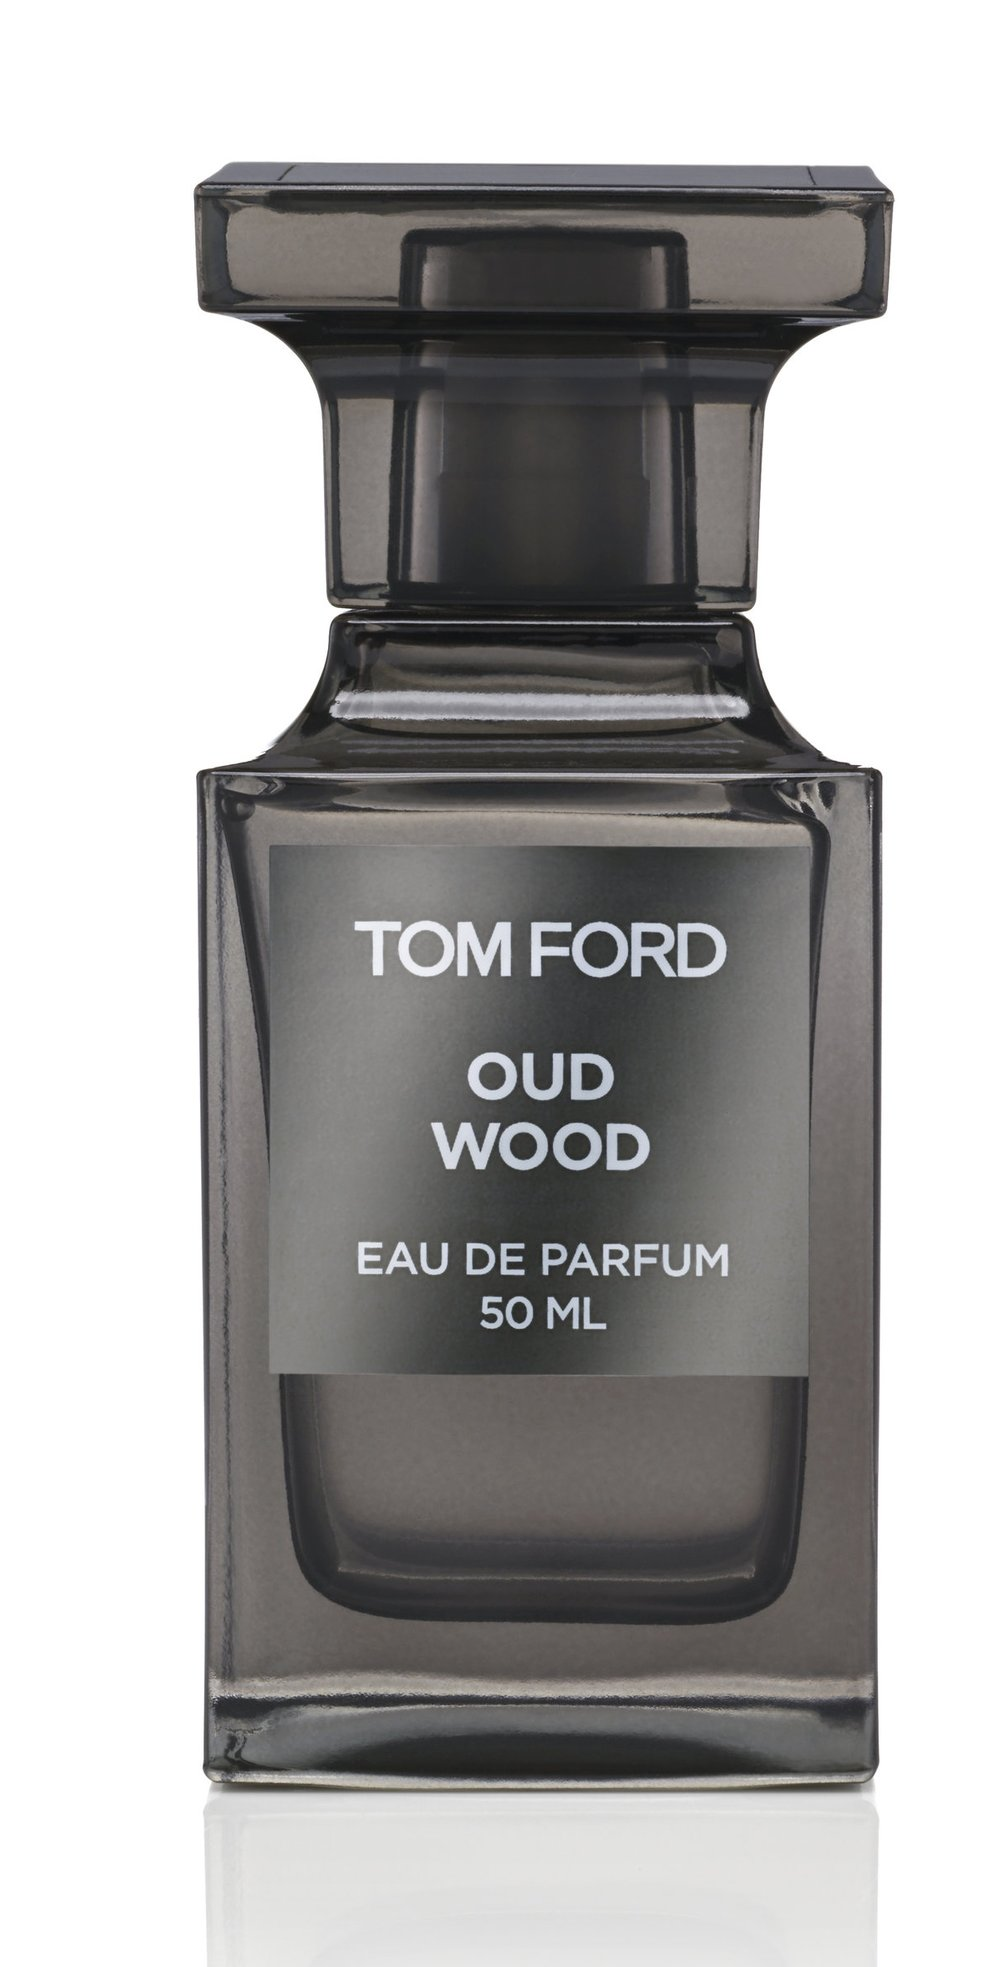 Tom Ford Oud Wood - 50ml.jpg